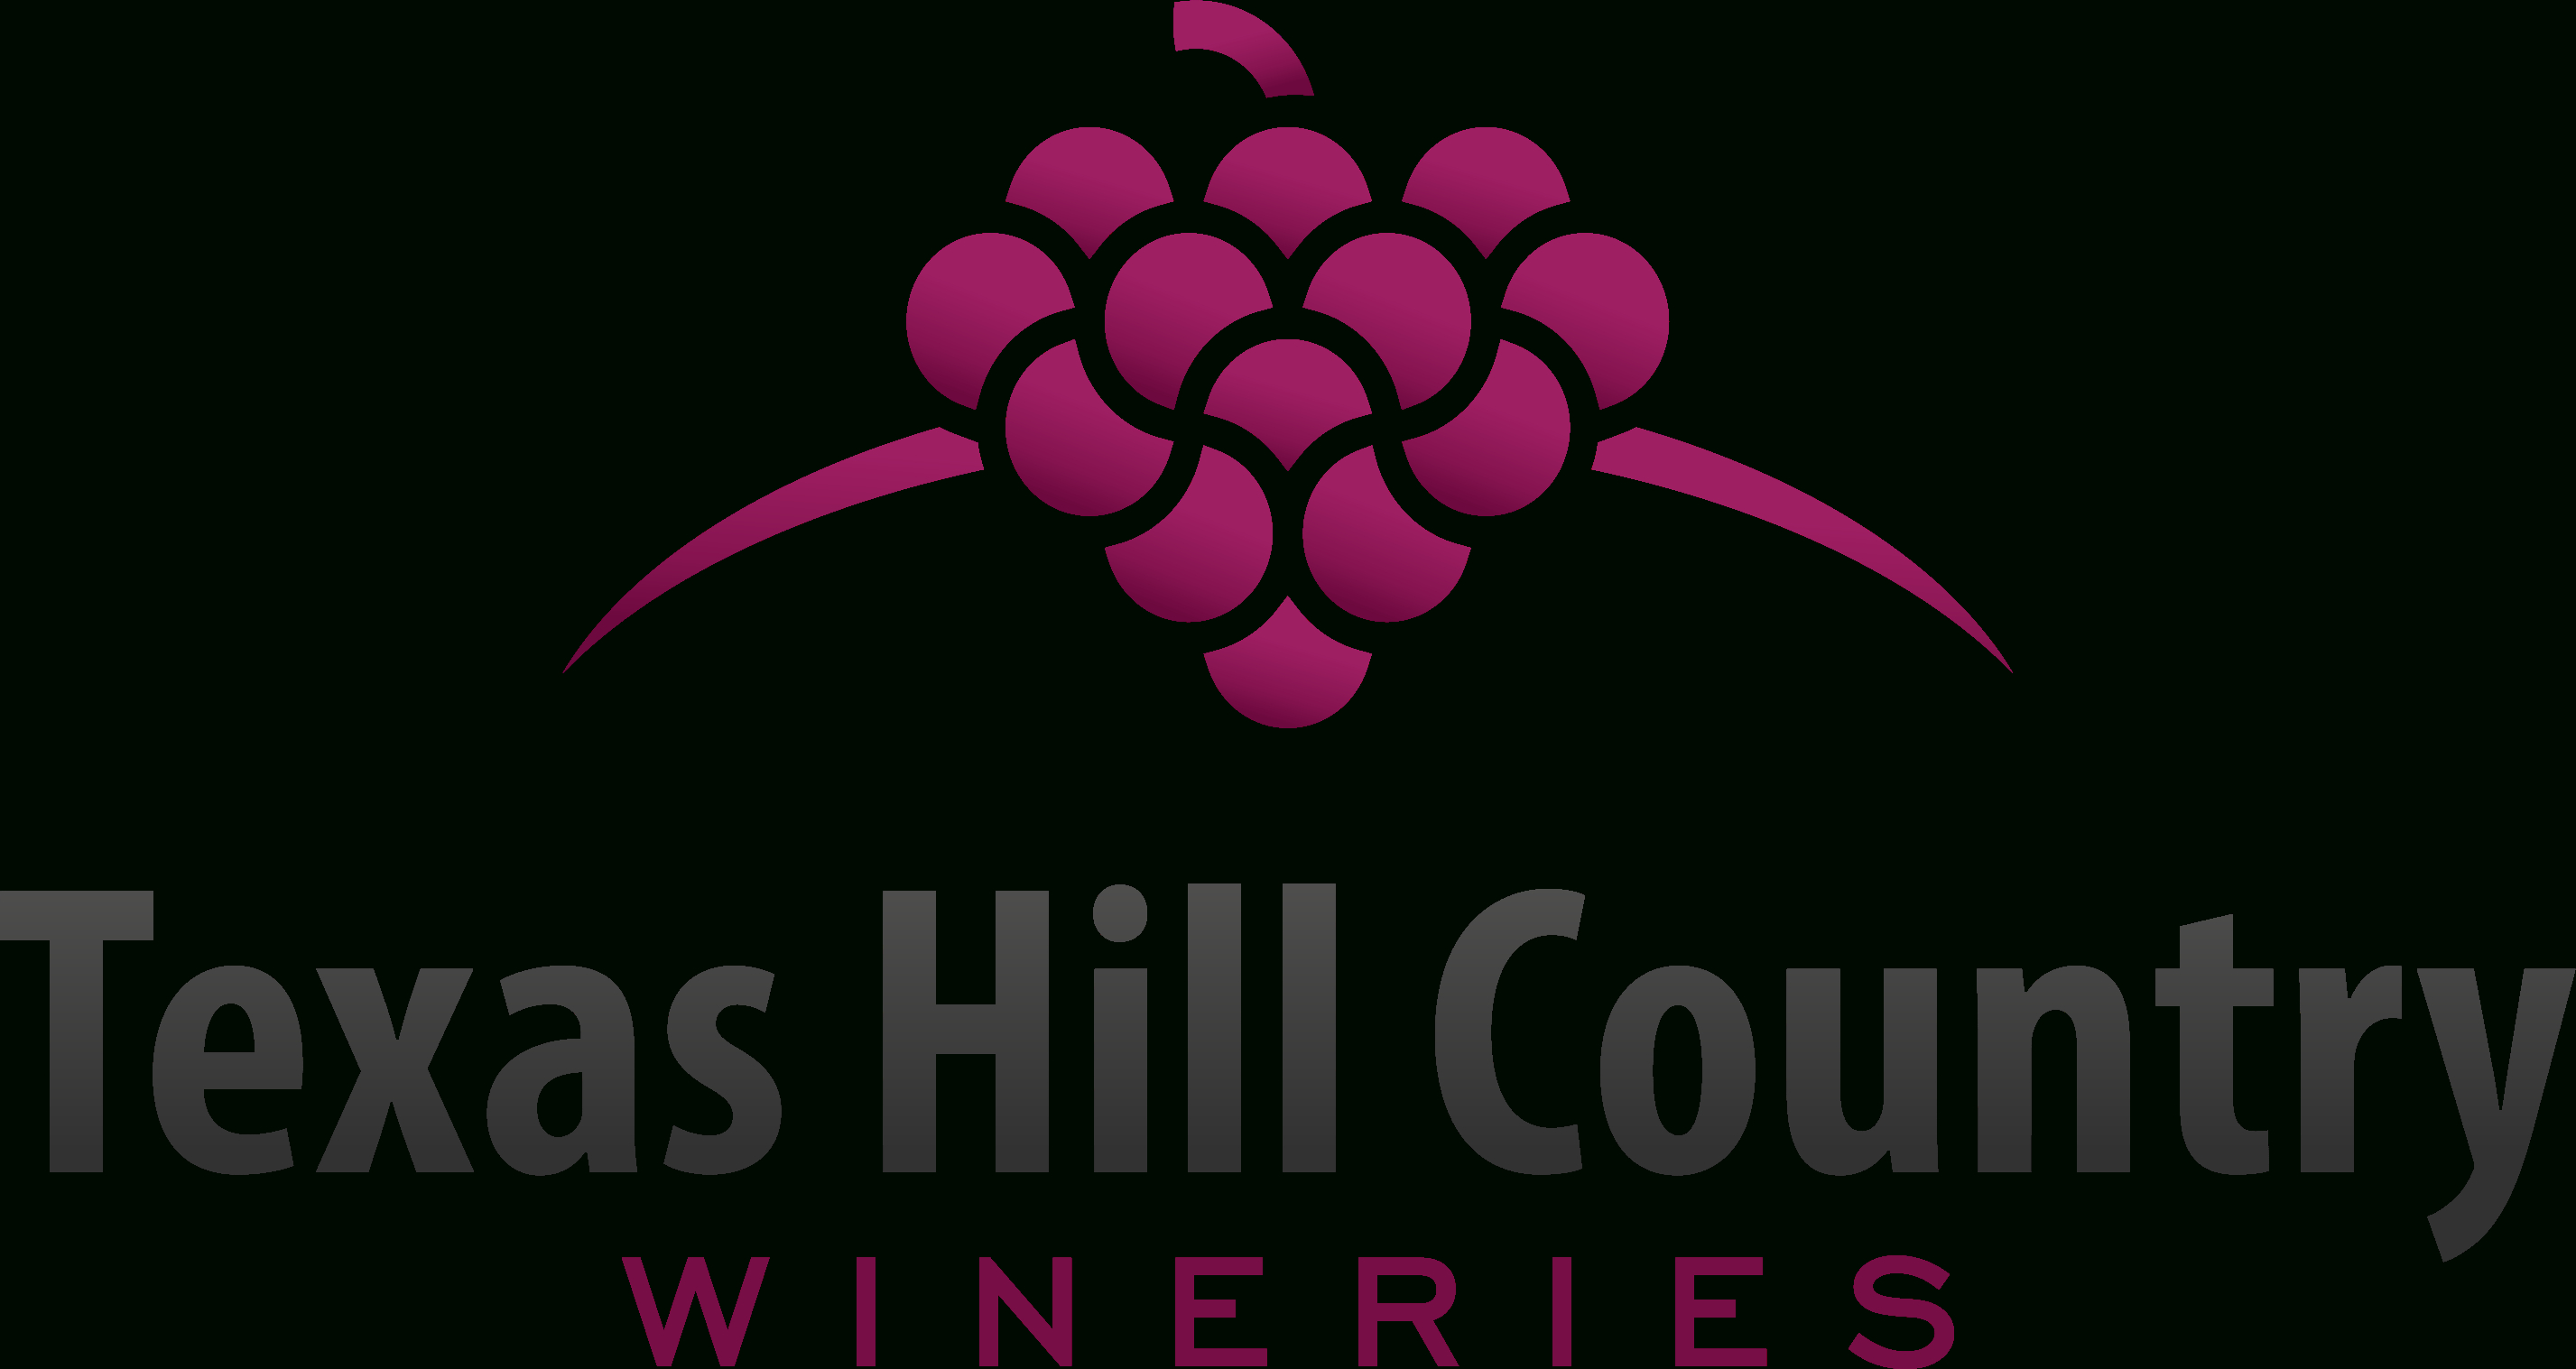 Wine Lovers Celebration 2019/02/08 - 2019/02/24 - Texas Hill Country - Texas Hill Country Wine Trail Map